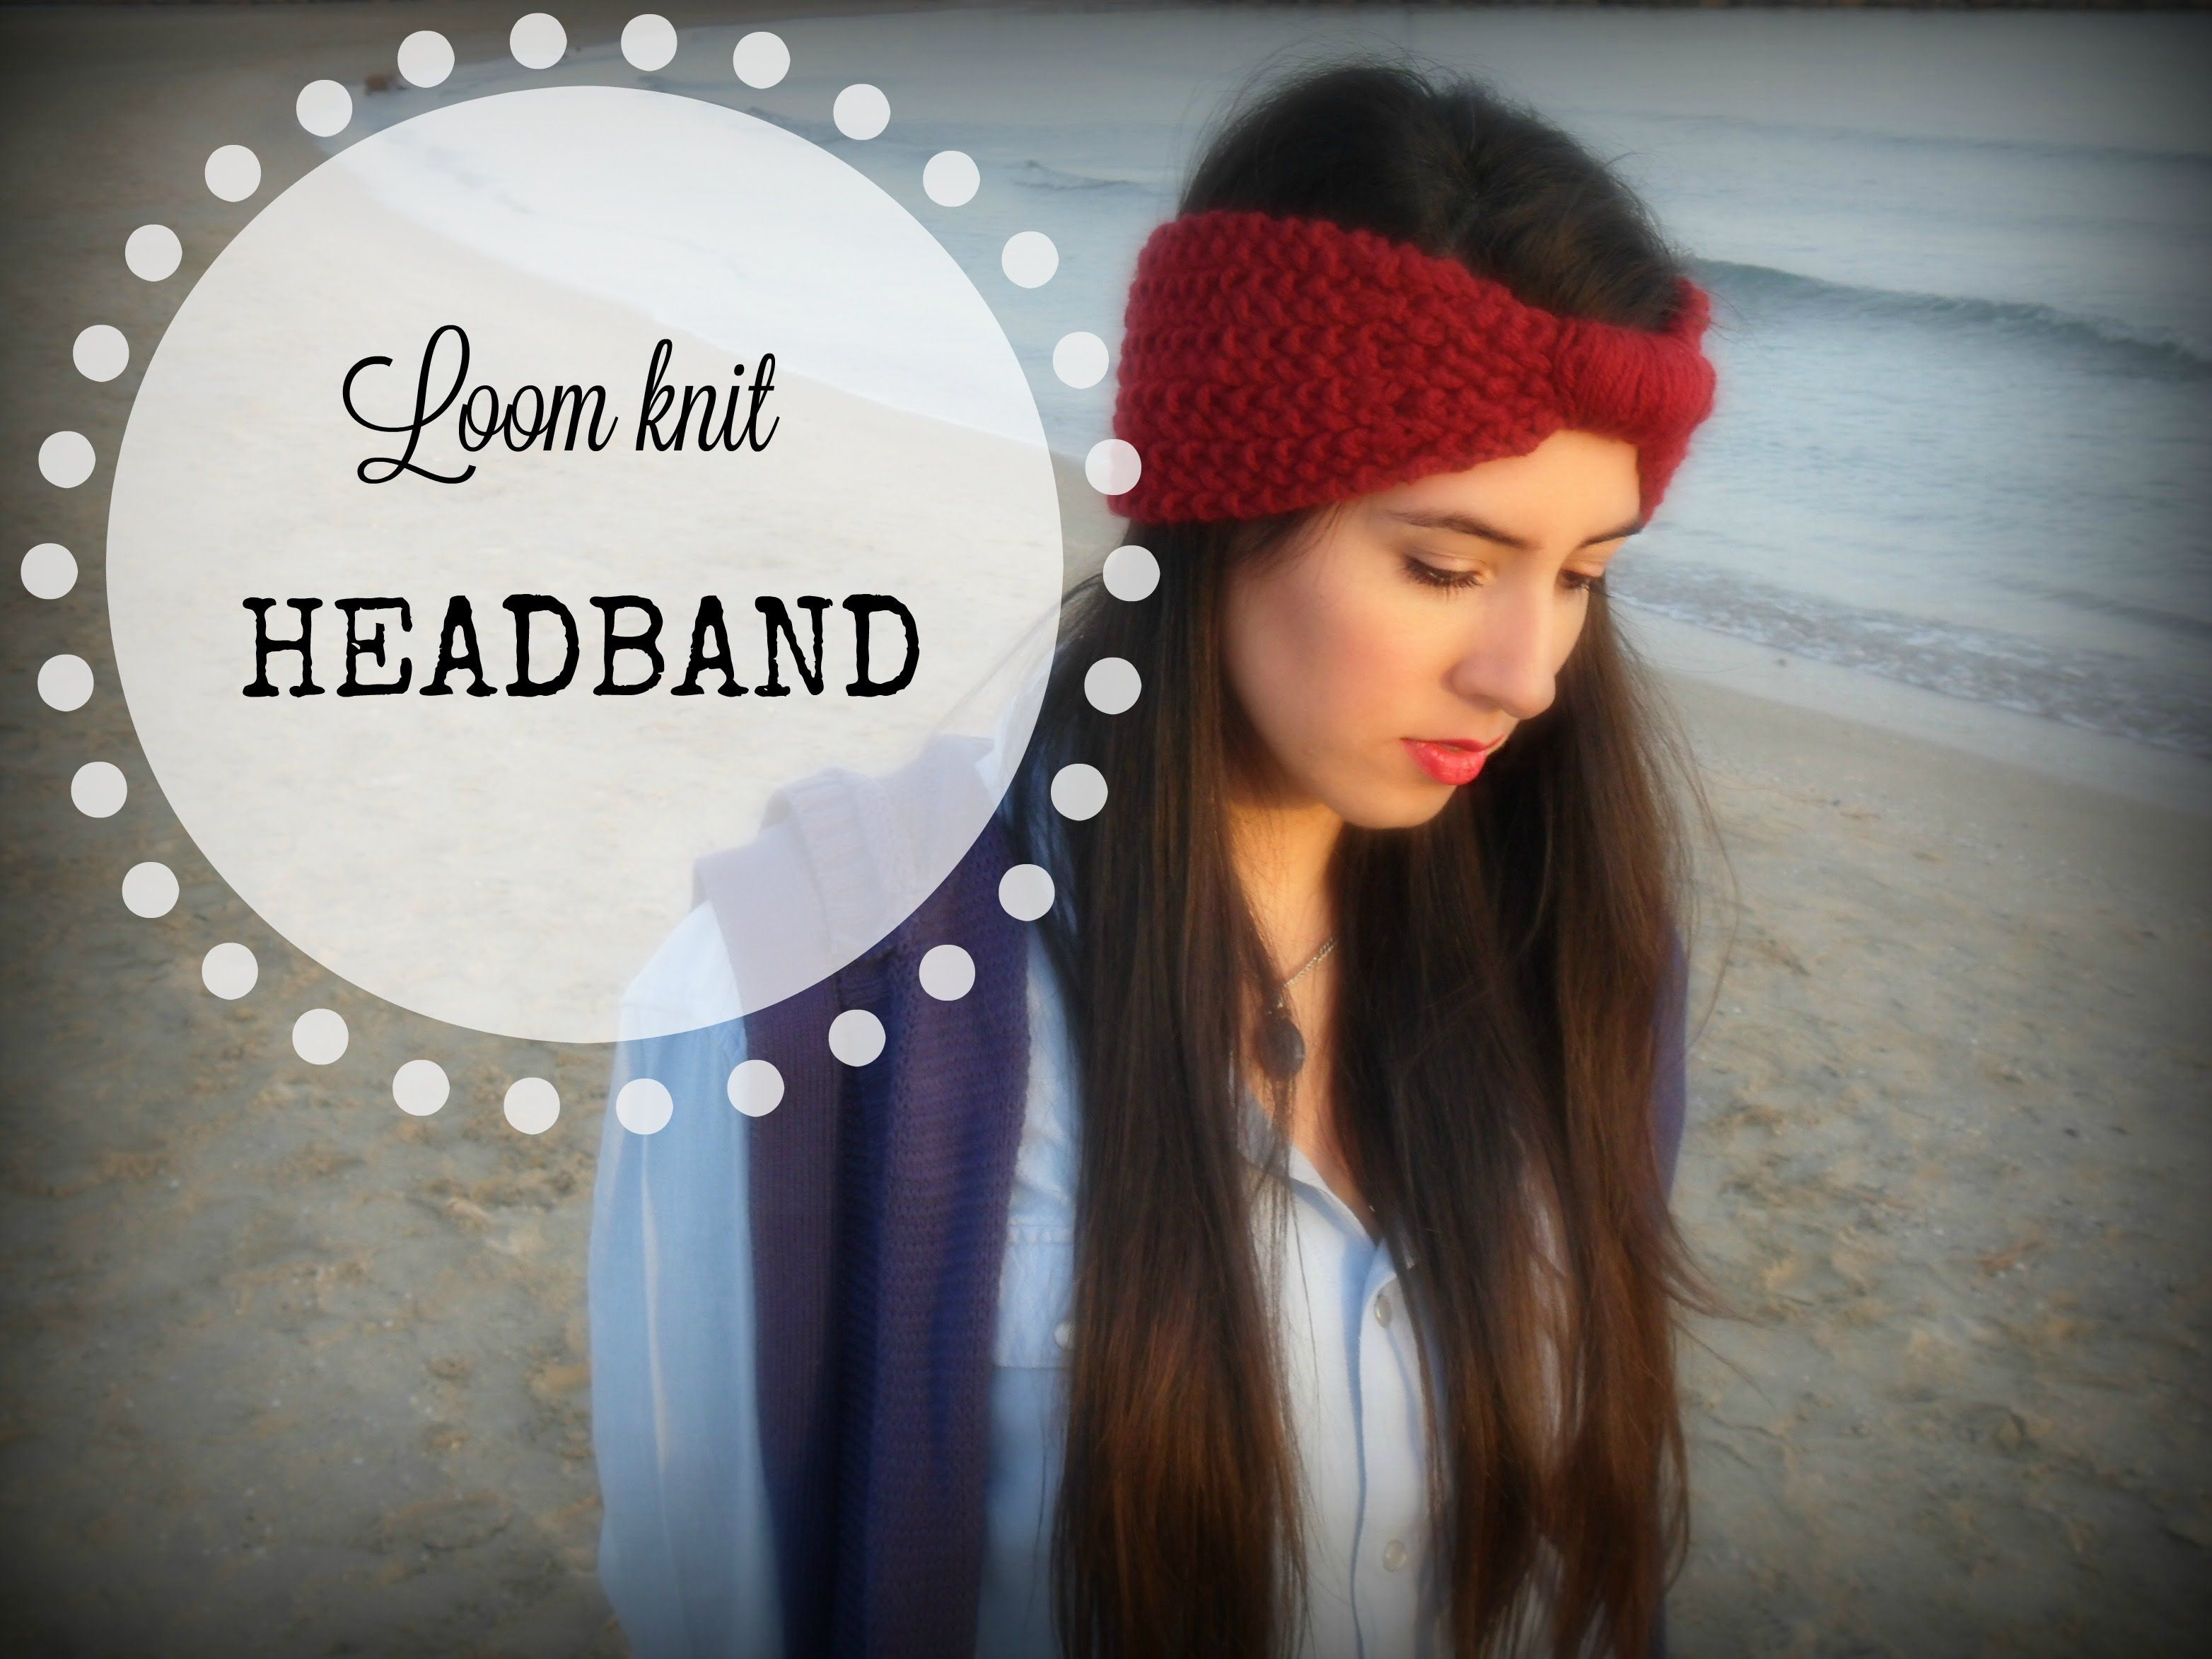 Easy knitted headbandear warmer in seed stitch on round loom easy knitted headbandear warmer in seed stitch on round loom youtube bankloansurffo Images